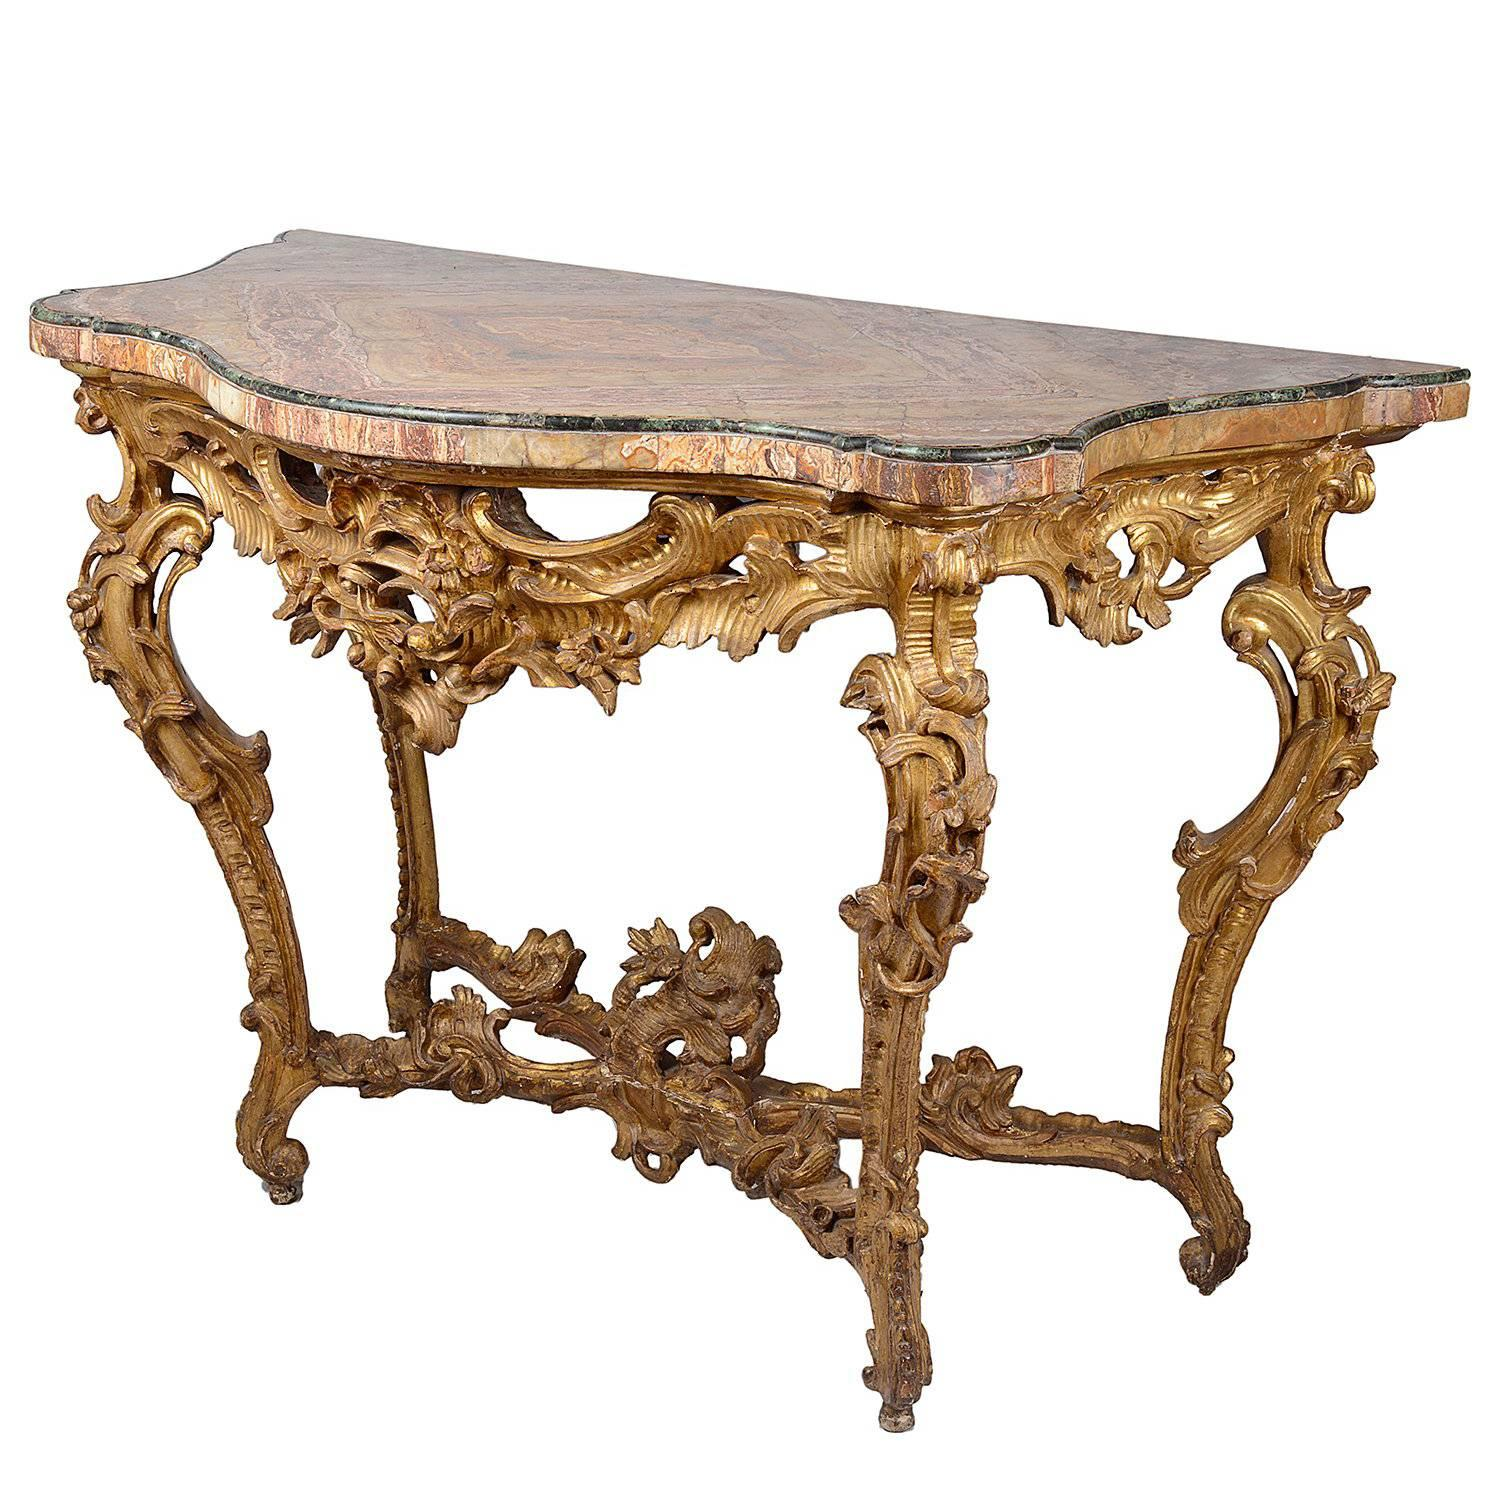 Italian 18th Century Carved Giltwood Console Table